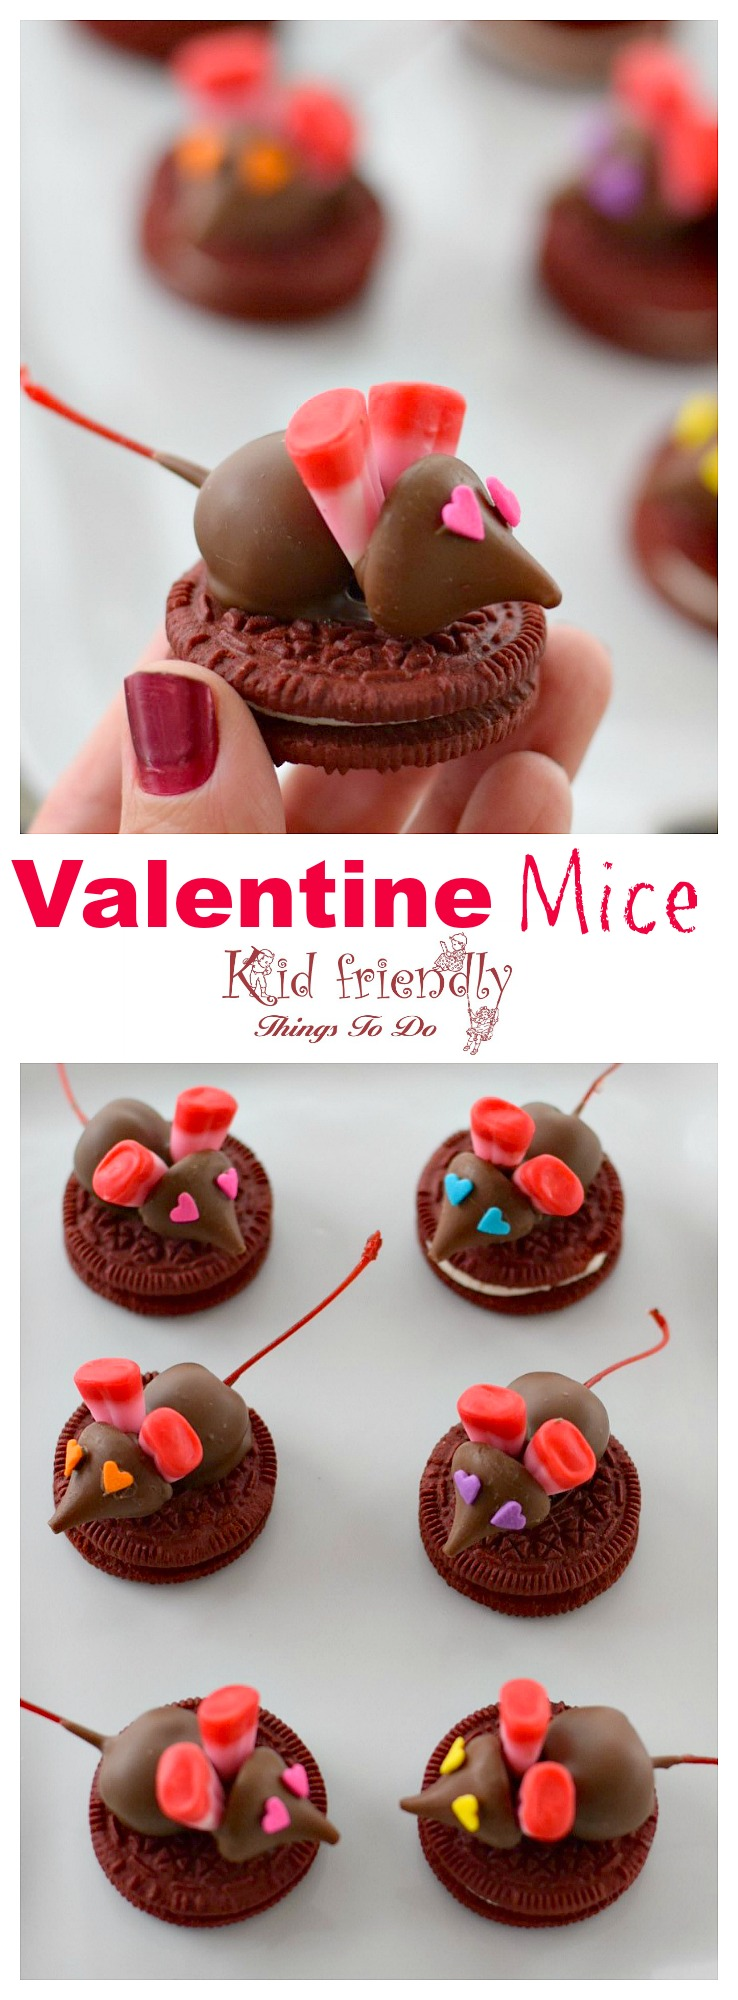 Chocolate Covered Cherry Valentine Mice On A Red Velvet Oreo Cookie for a kids fun food treat - great for parties www.kidfriendlythingstodo.com